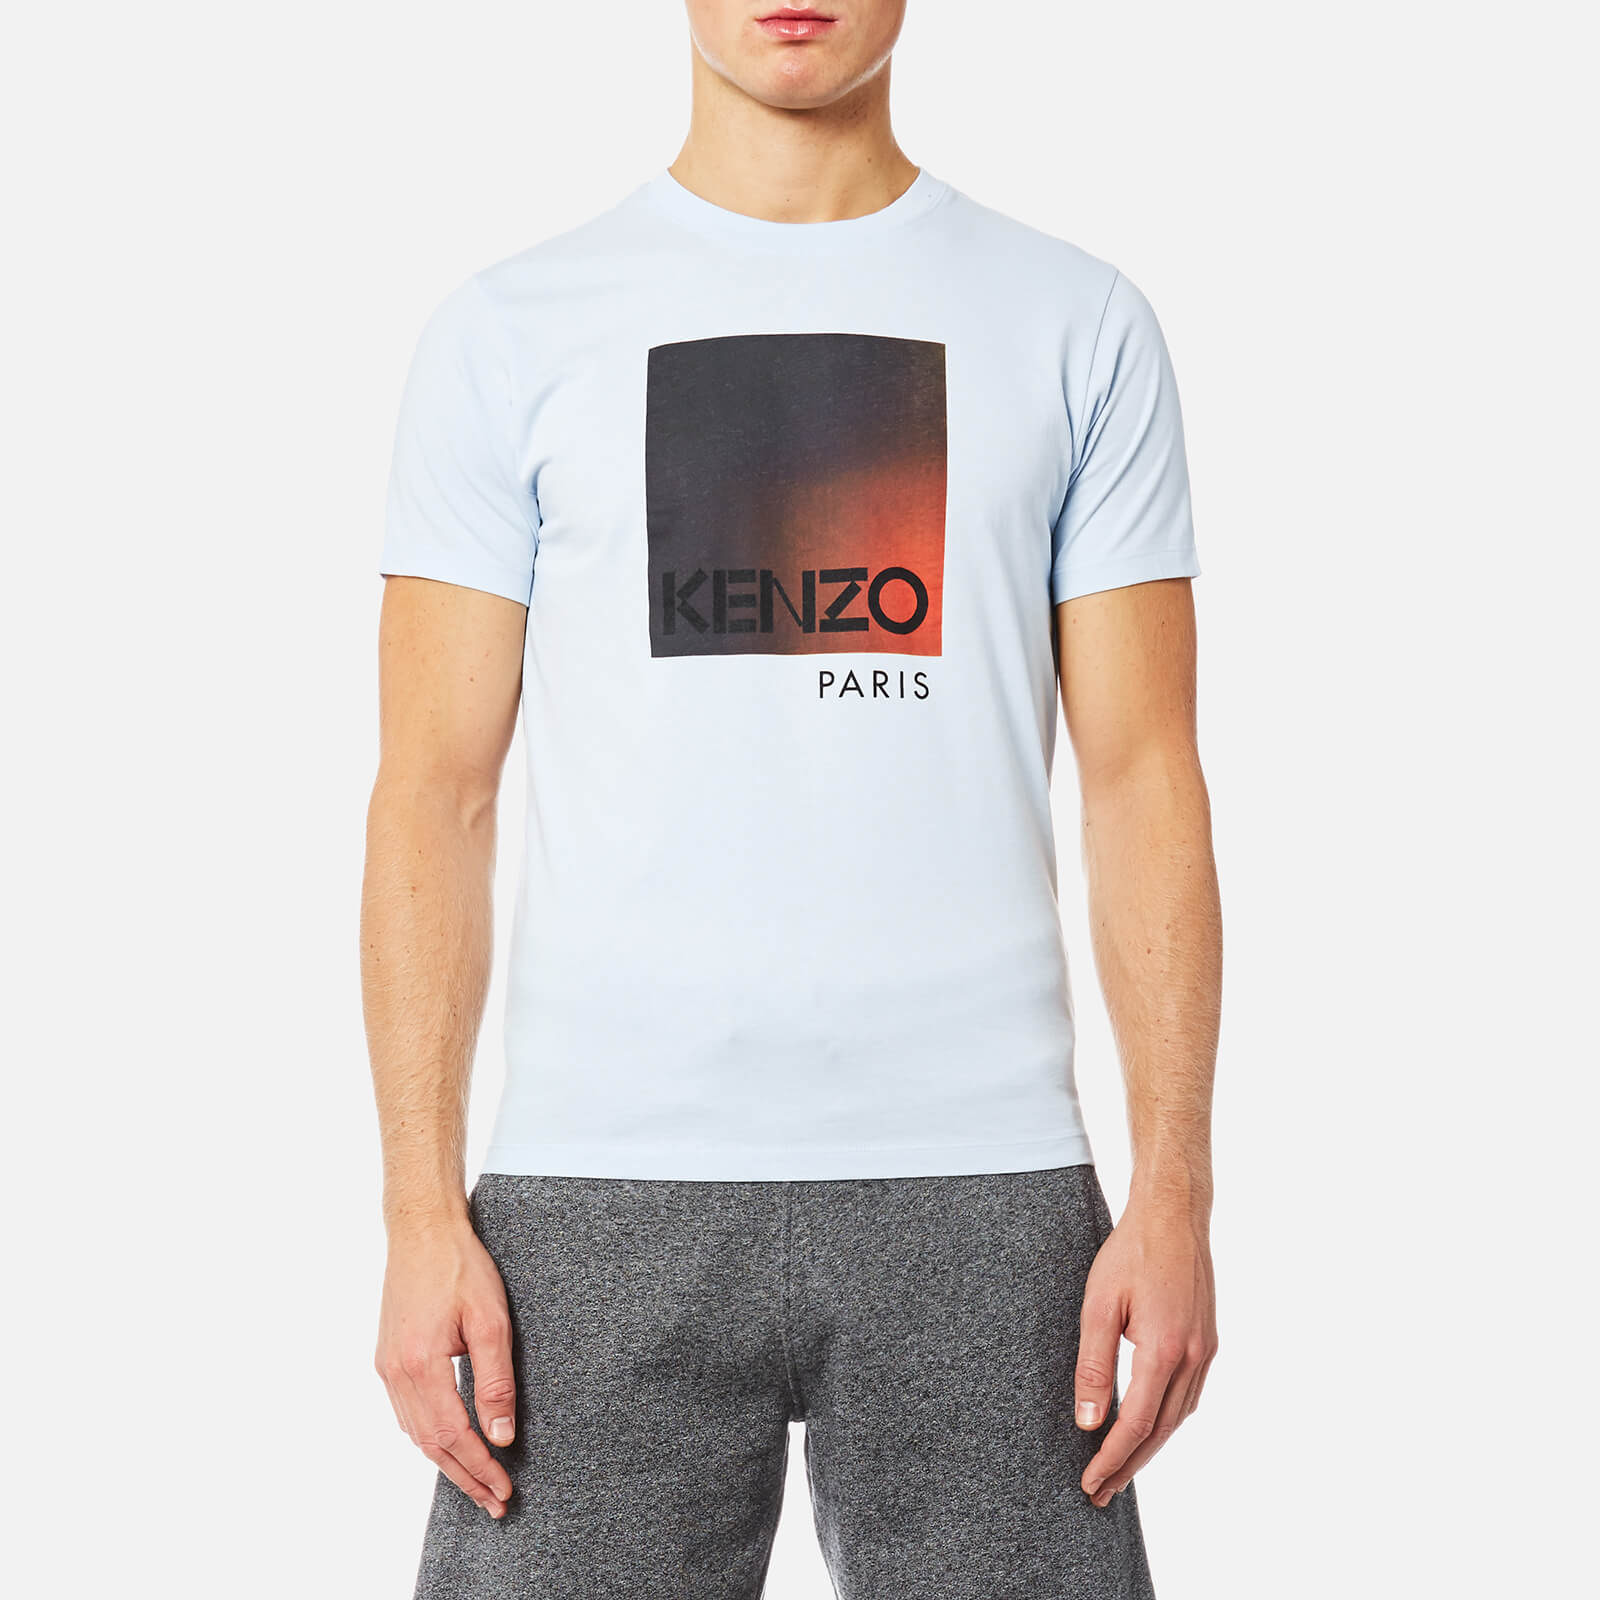 a7aea839a90f KENZO Men's Classic Degrade Logo T-Shirt - Light Blue - Free UK Delivery  over £50